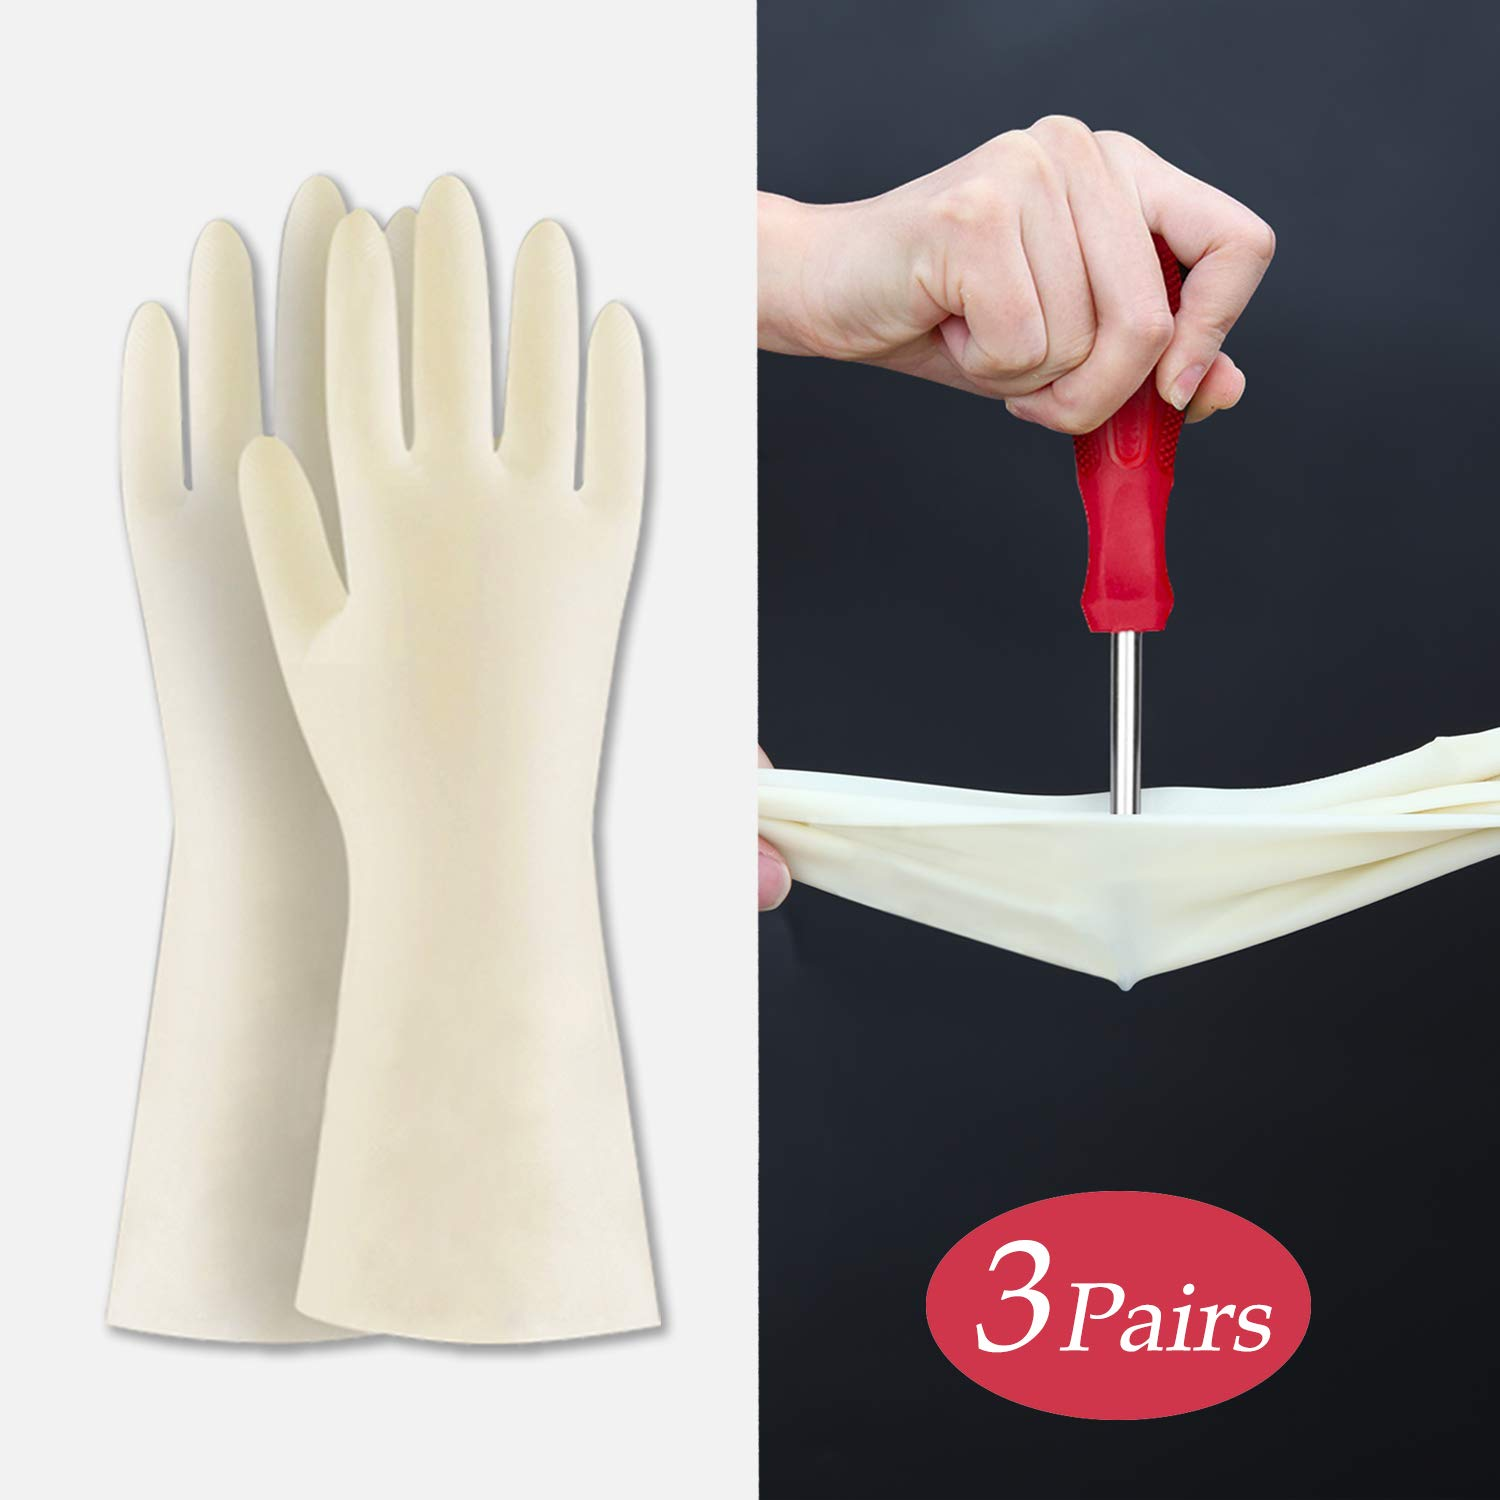 BOOMJOY Cleaning Gloves, Nitrile Rubber Kitchen Gloves Heavy Duty for Cooking, Washing Kitchen, Bathroom, Car & More, Creamy White, 3 Pairs, Size-L